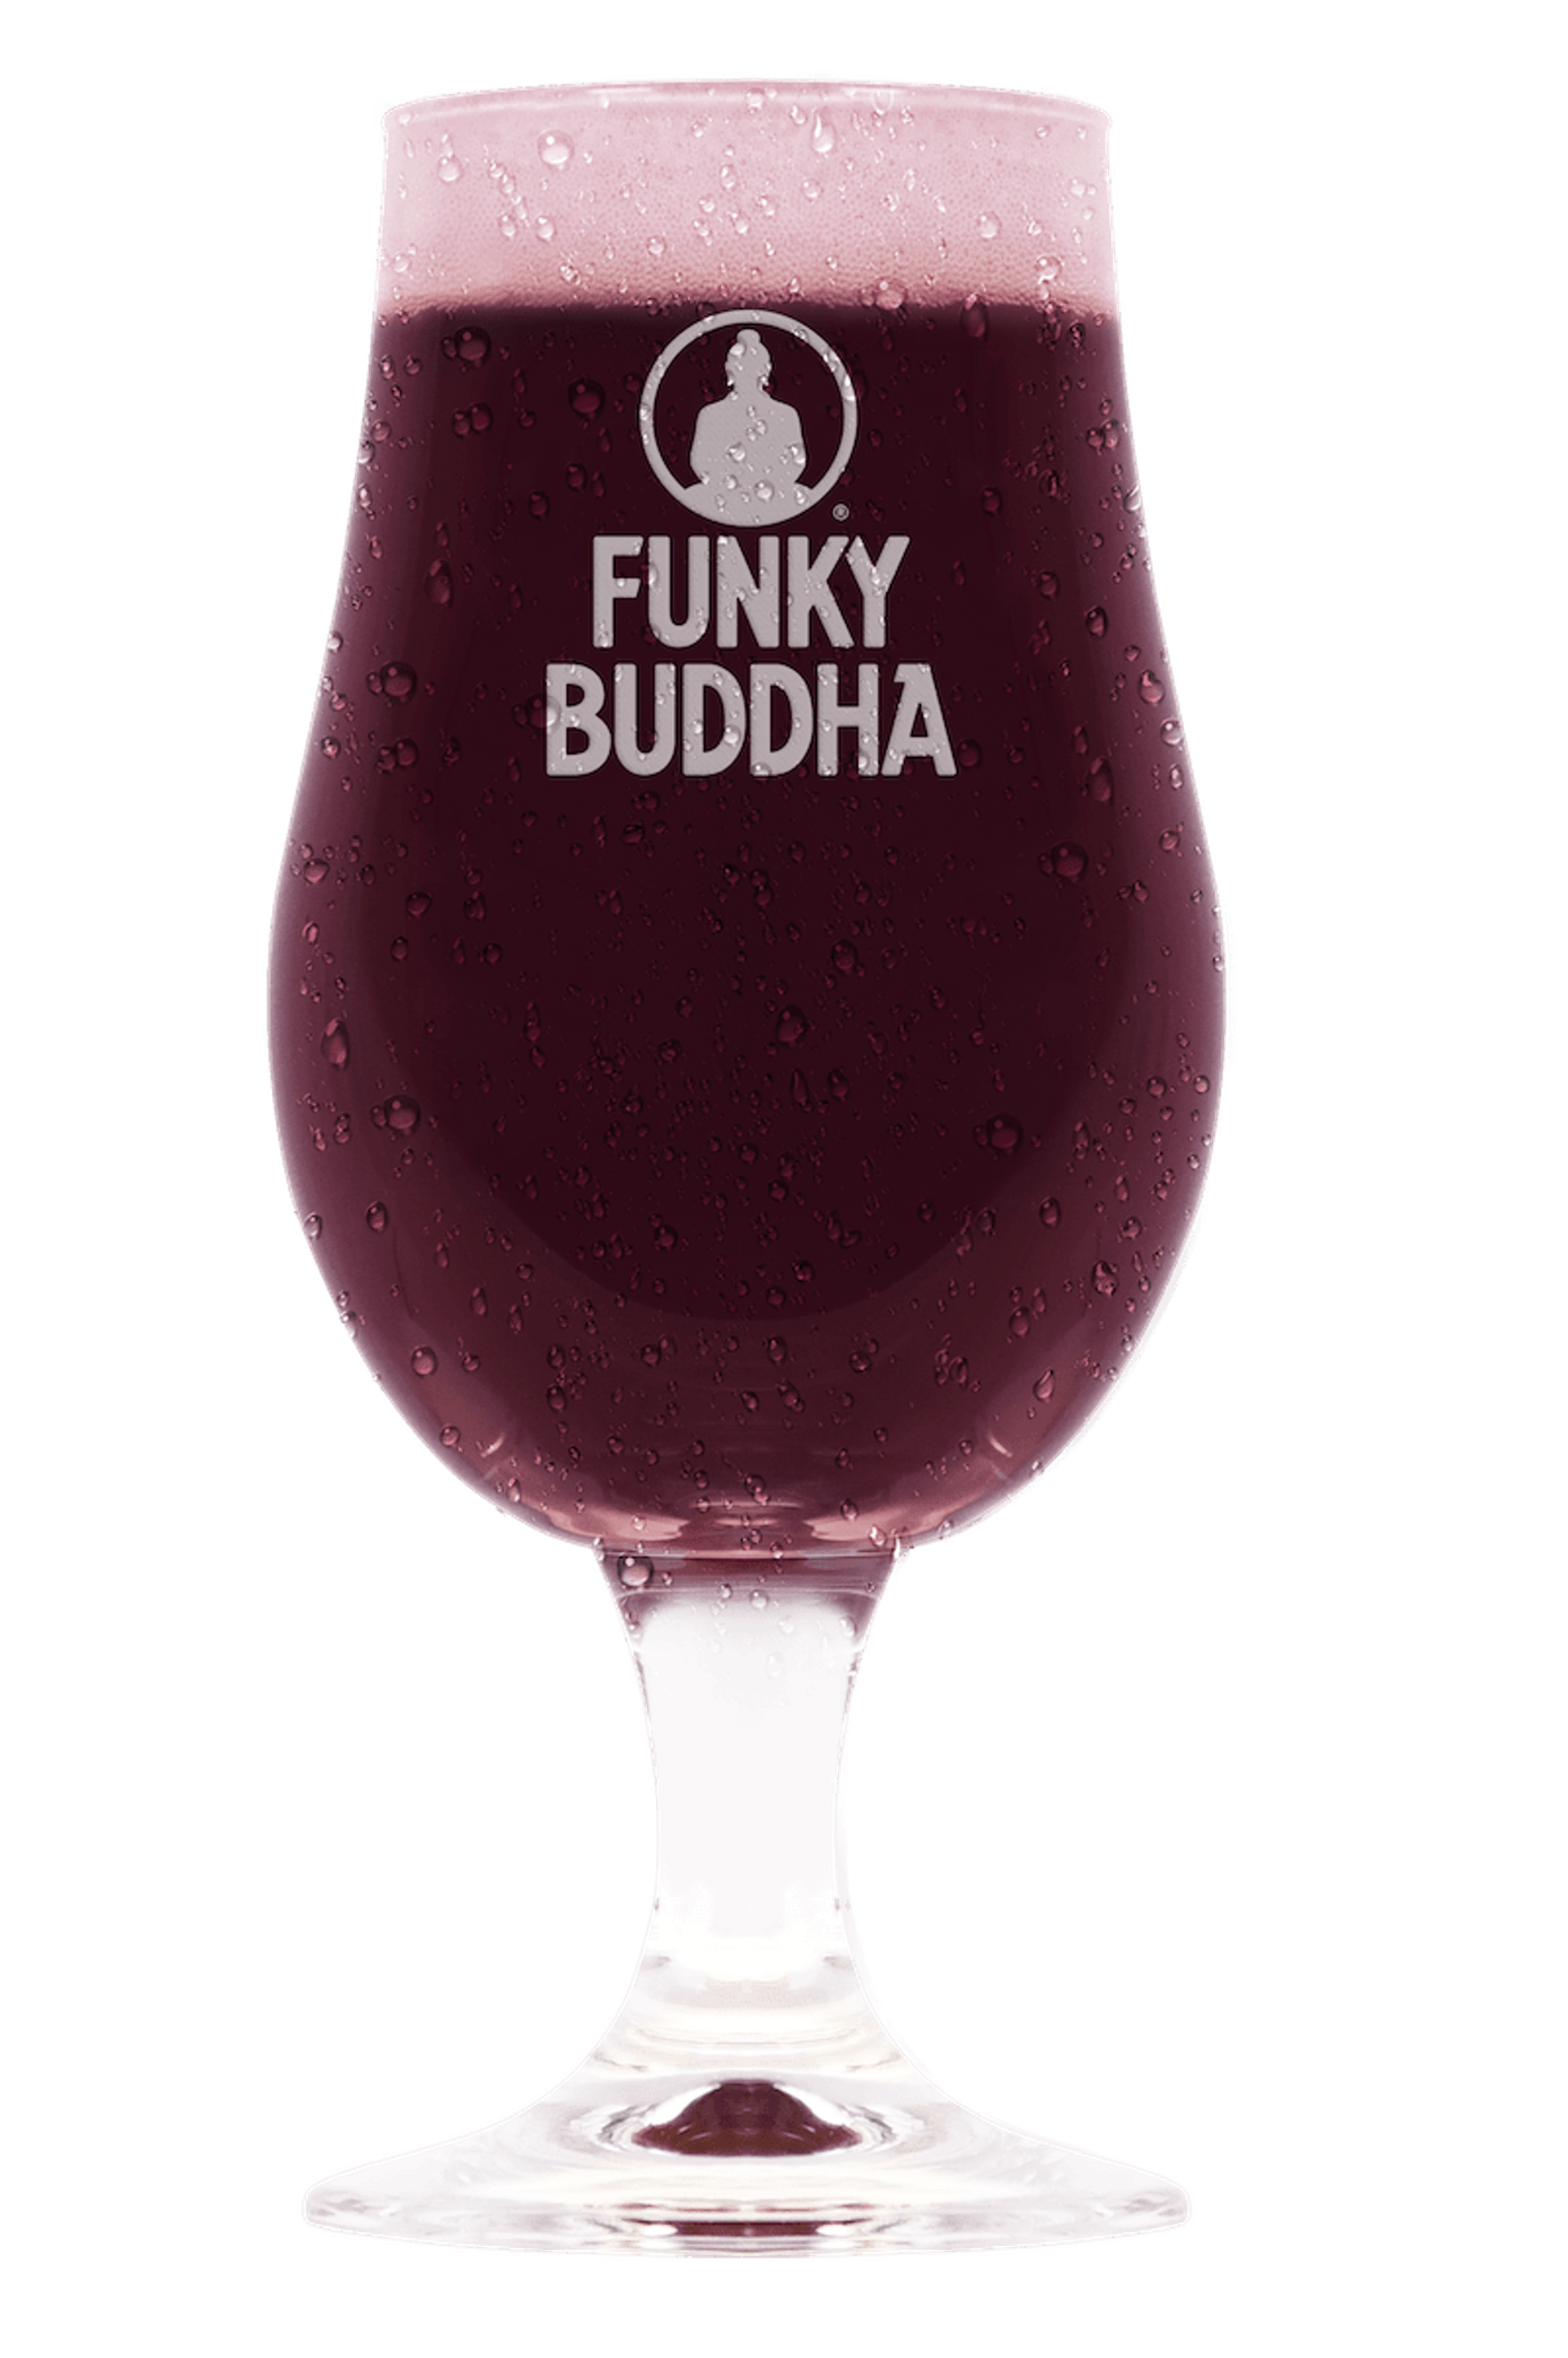 Violet colored beer in glass